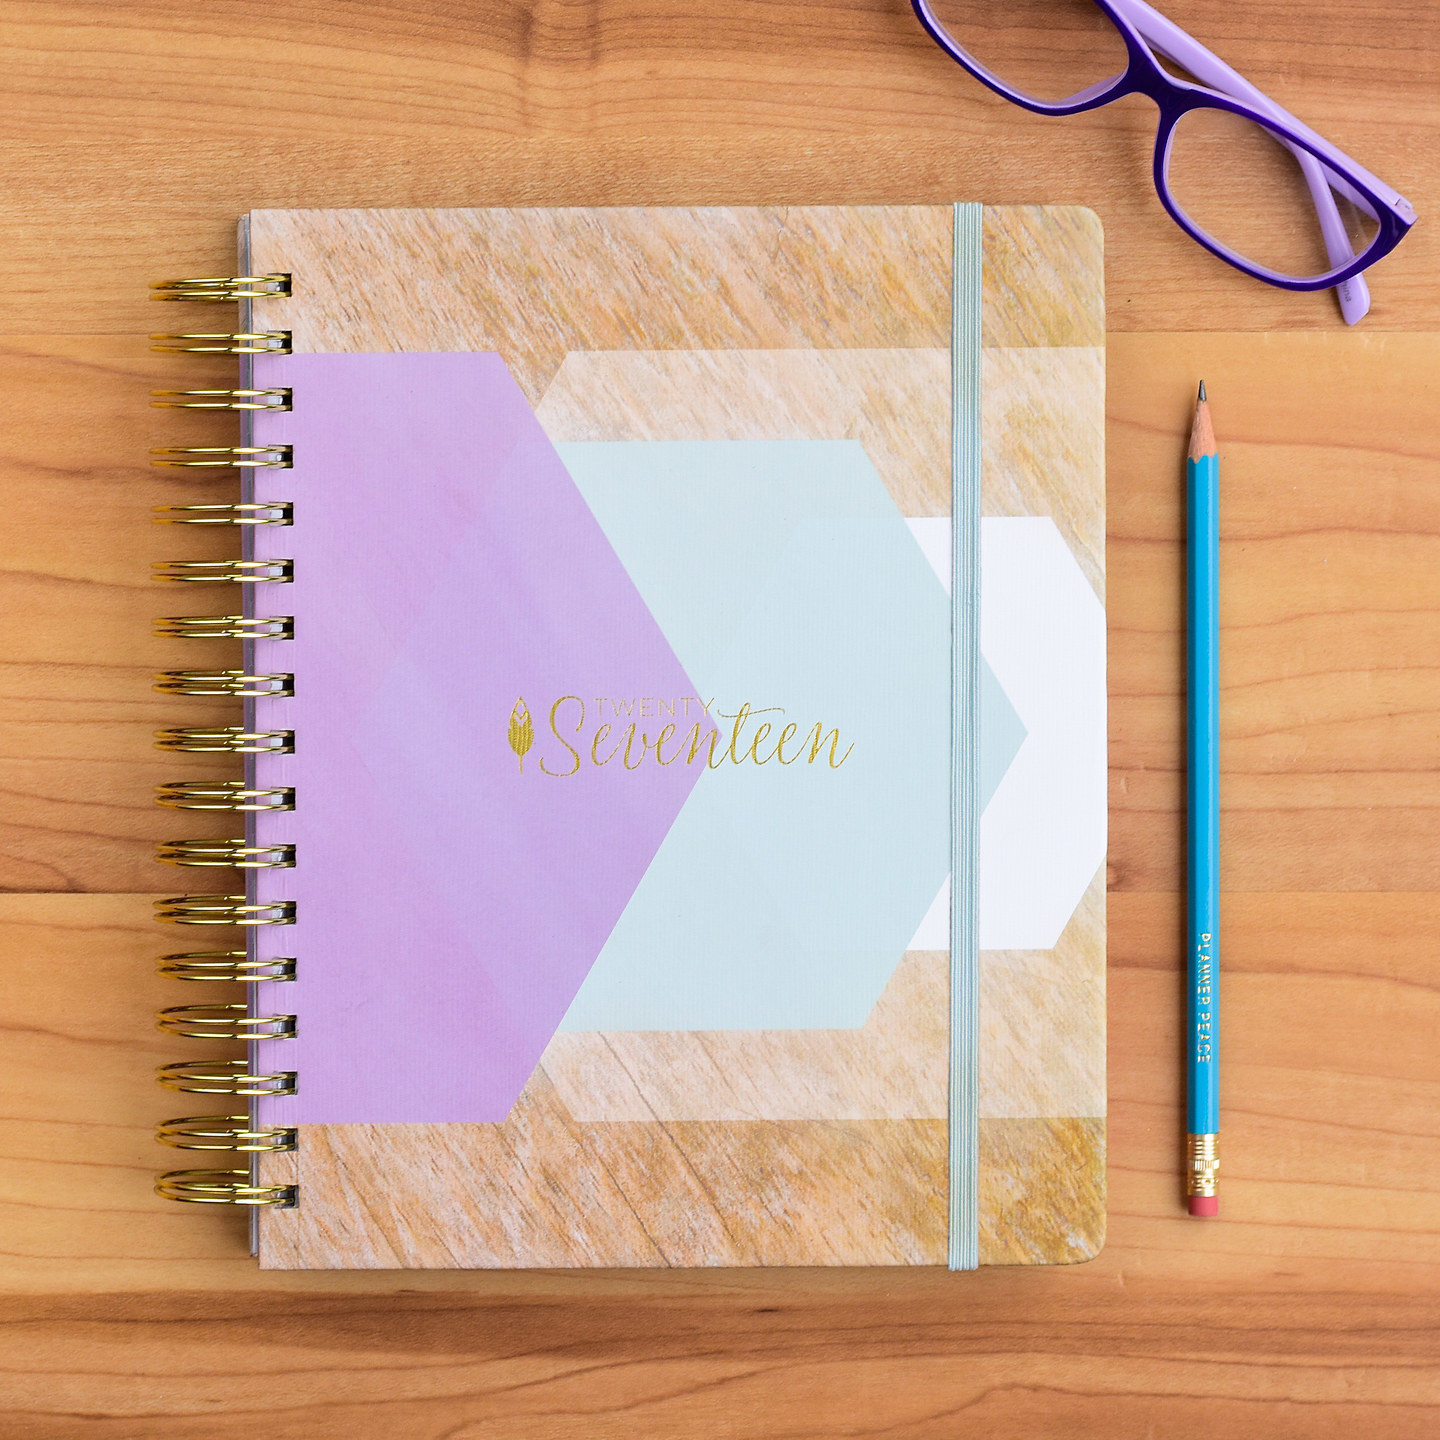 11 Awesome Planners That Will Get You Organized